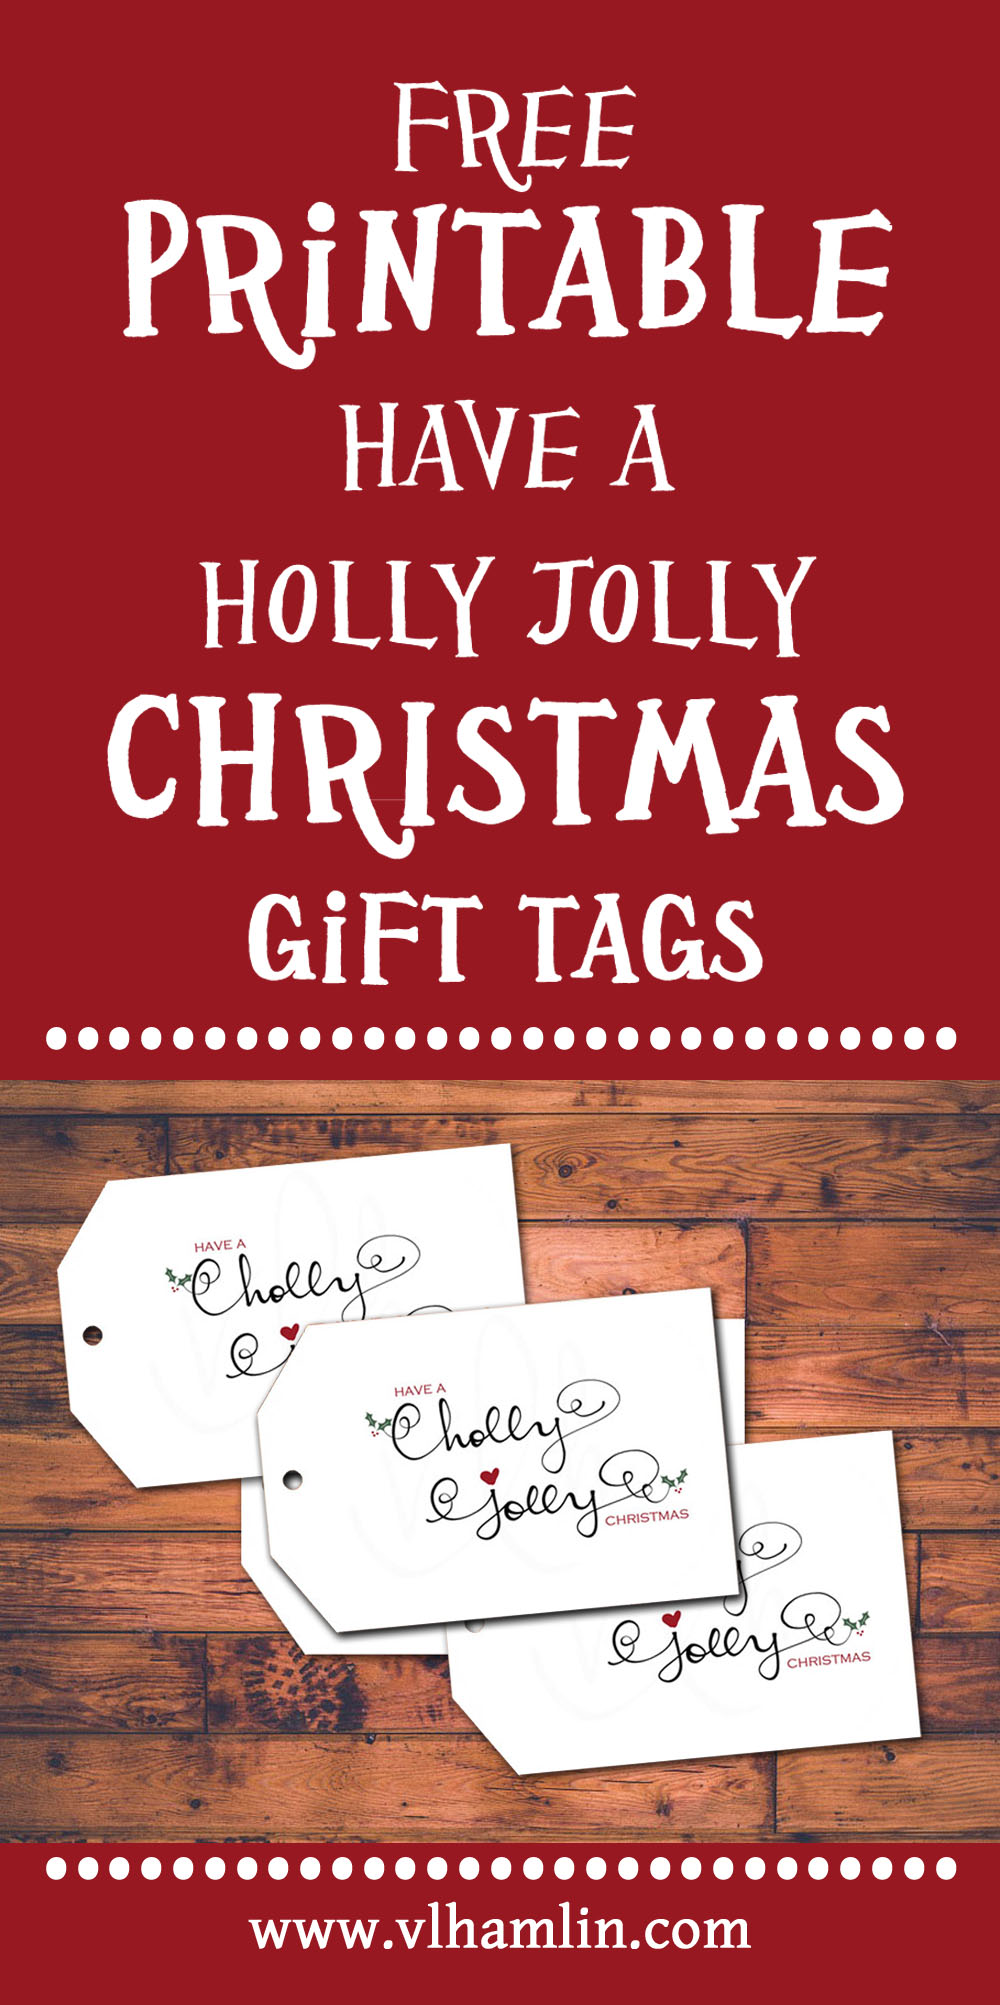 Free Printable Christmas Gift Tags - Have a Holly Jolly Christmas